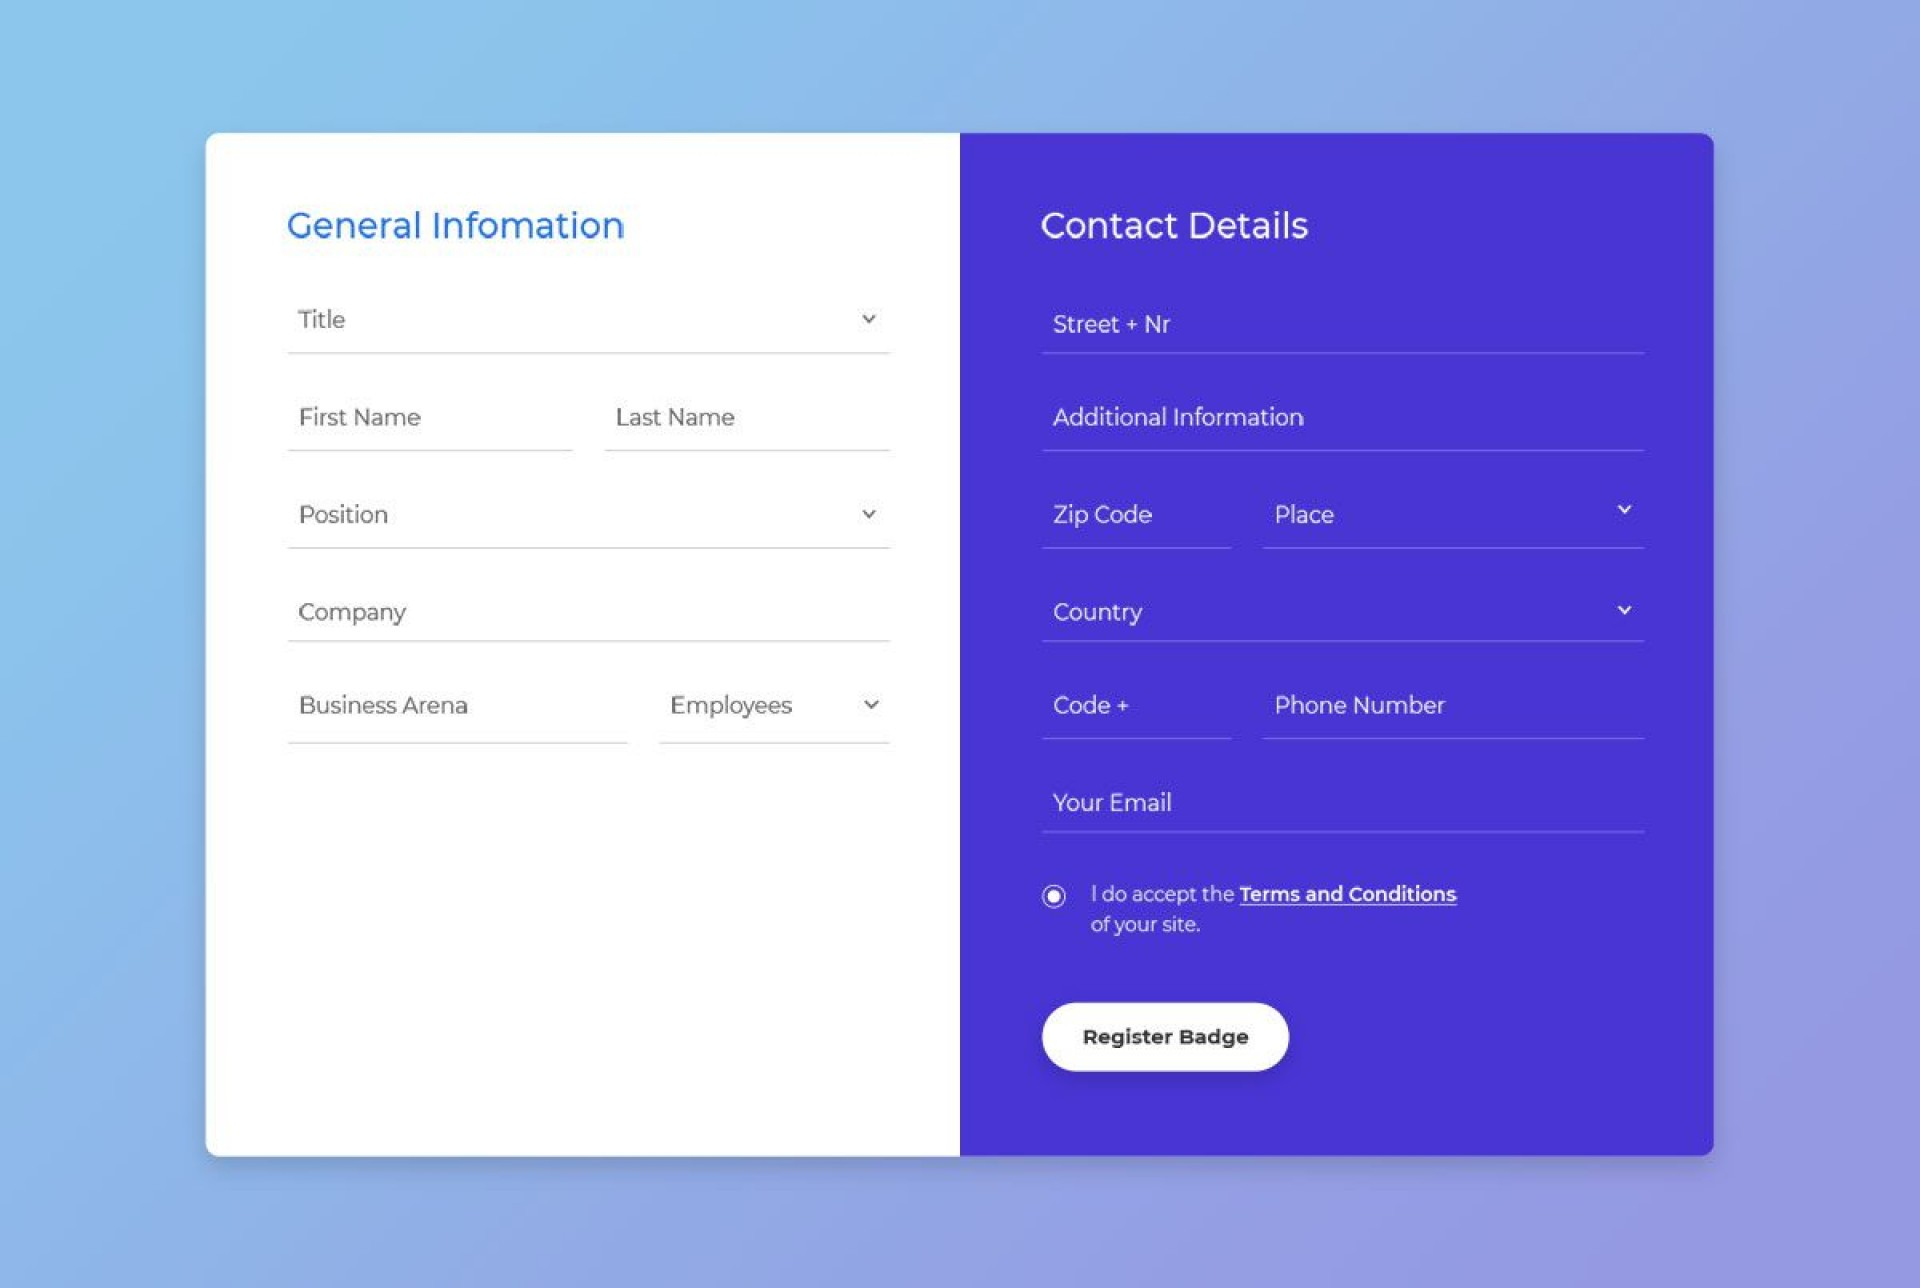 008 Awful Registration Form Template Free Download High Def  Bootstrap Student W3layout In Php1920